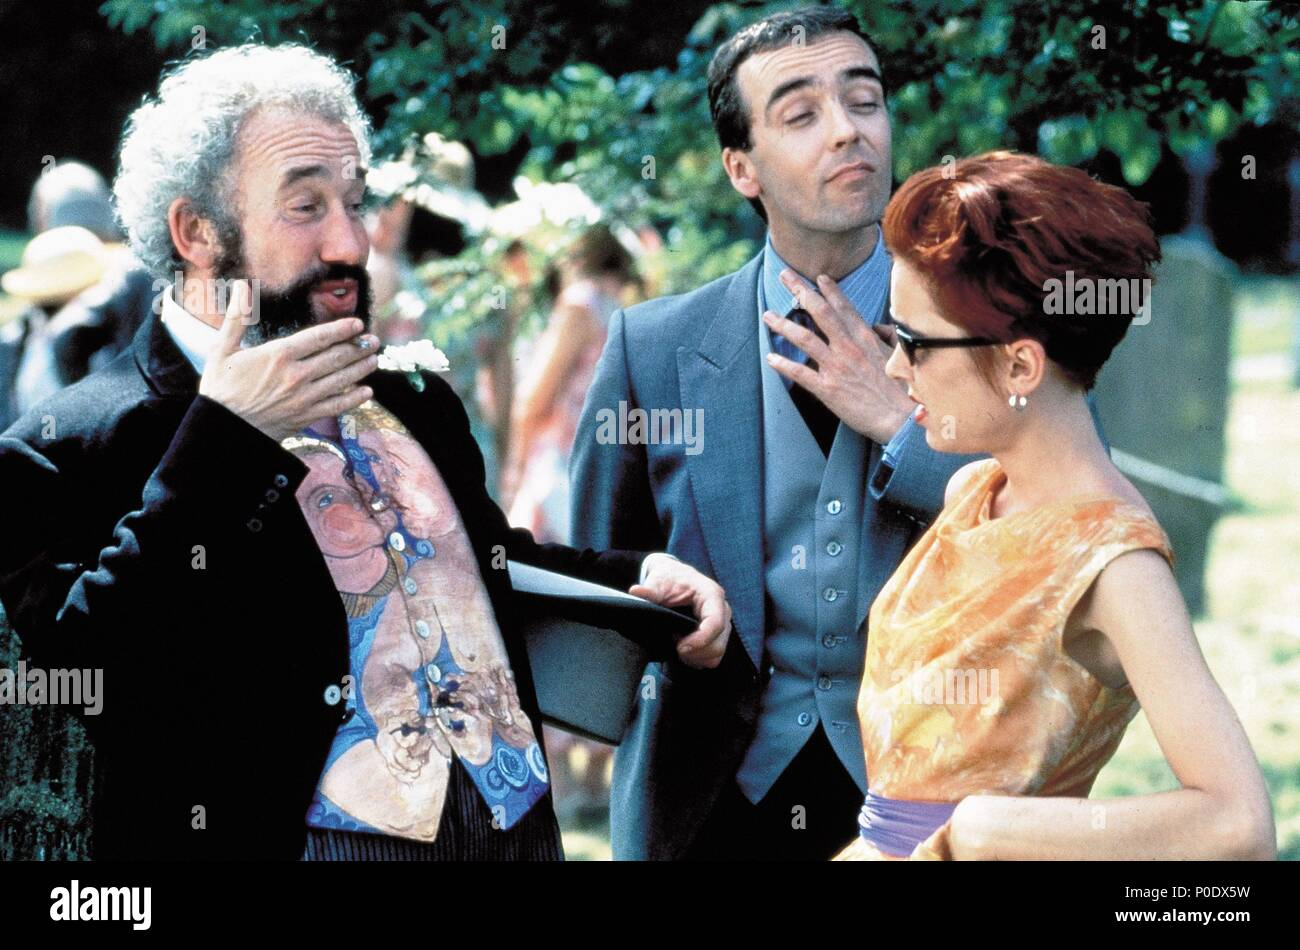 Original Film Title Four Weddings And A Funeral English Title